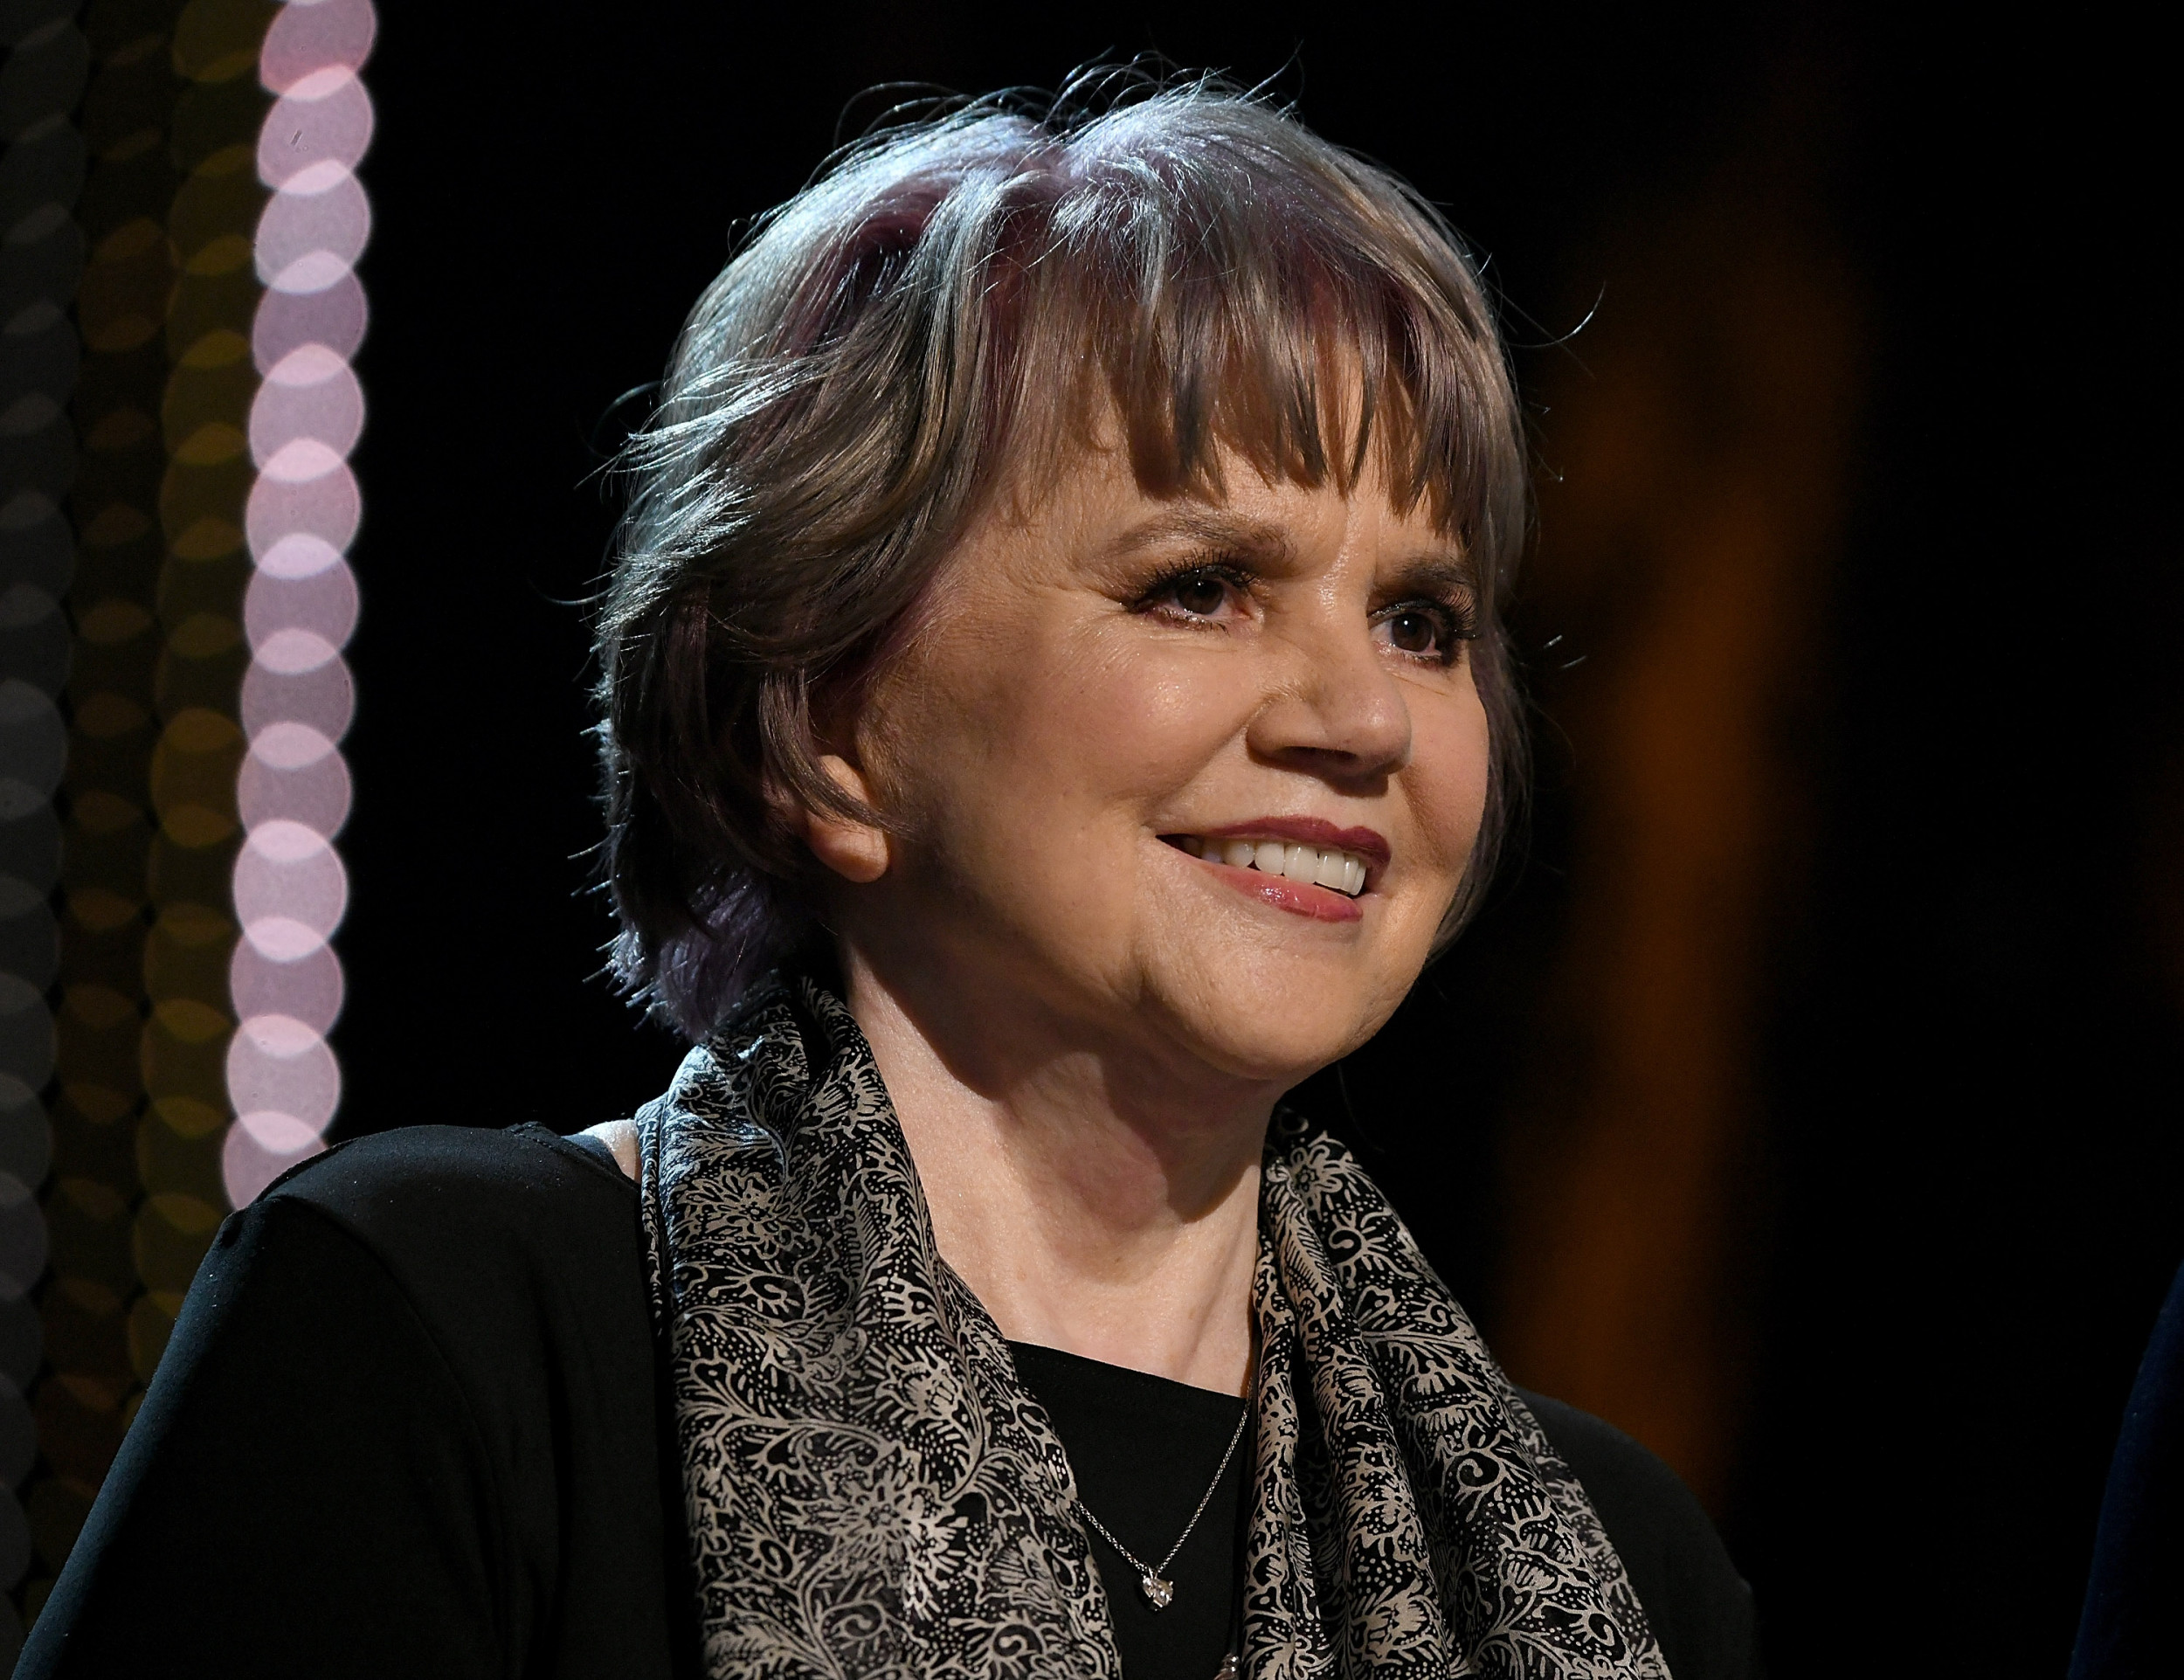 Linda Ronstadt Compares Donald Trump to Adolf Hitler, Says 'If You Read the History, You Won't Be Surprised'